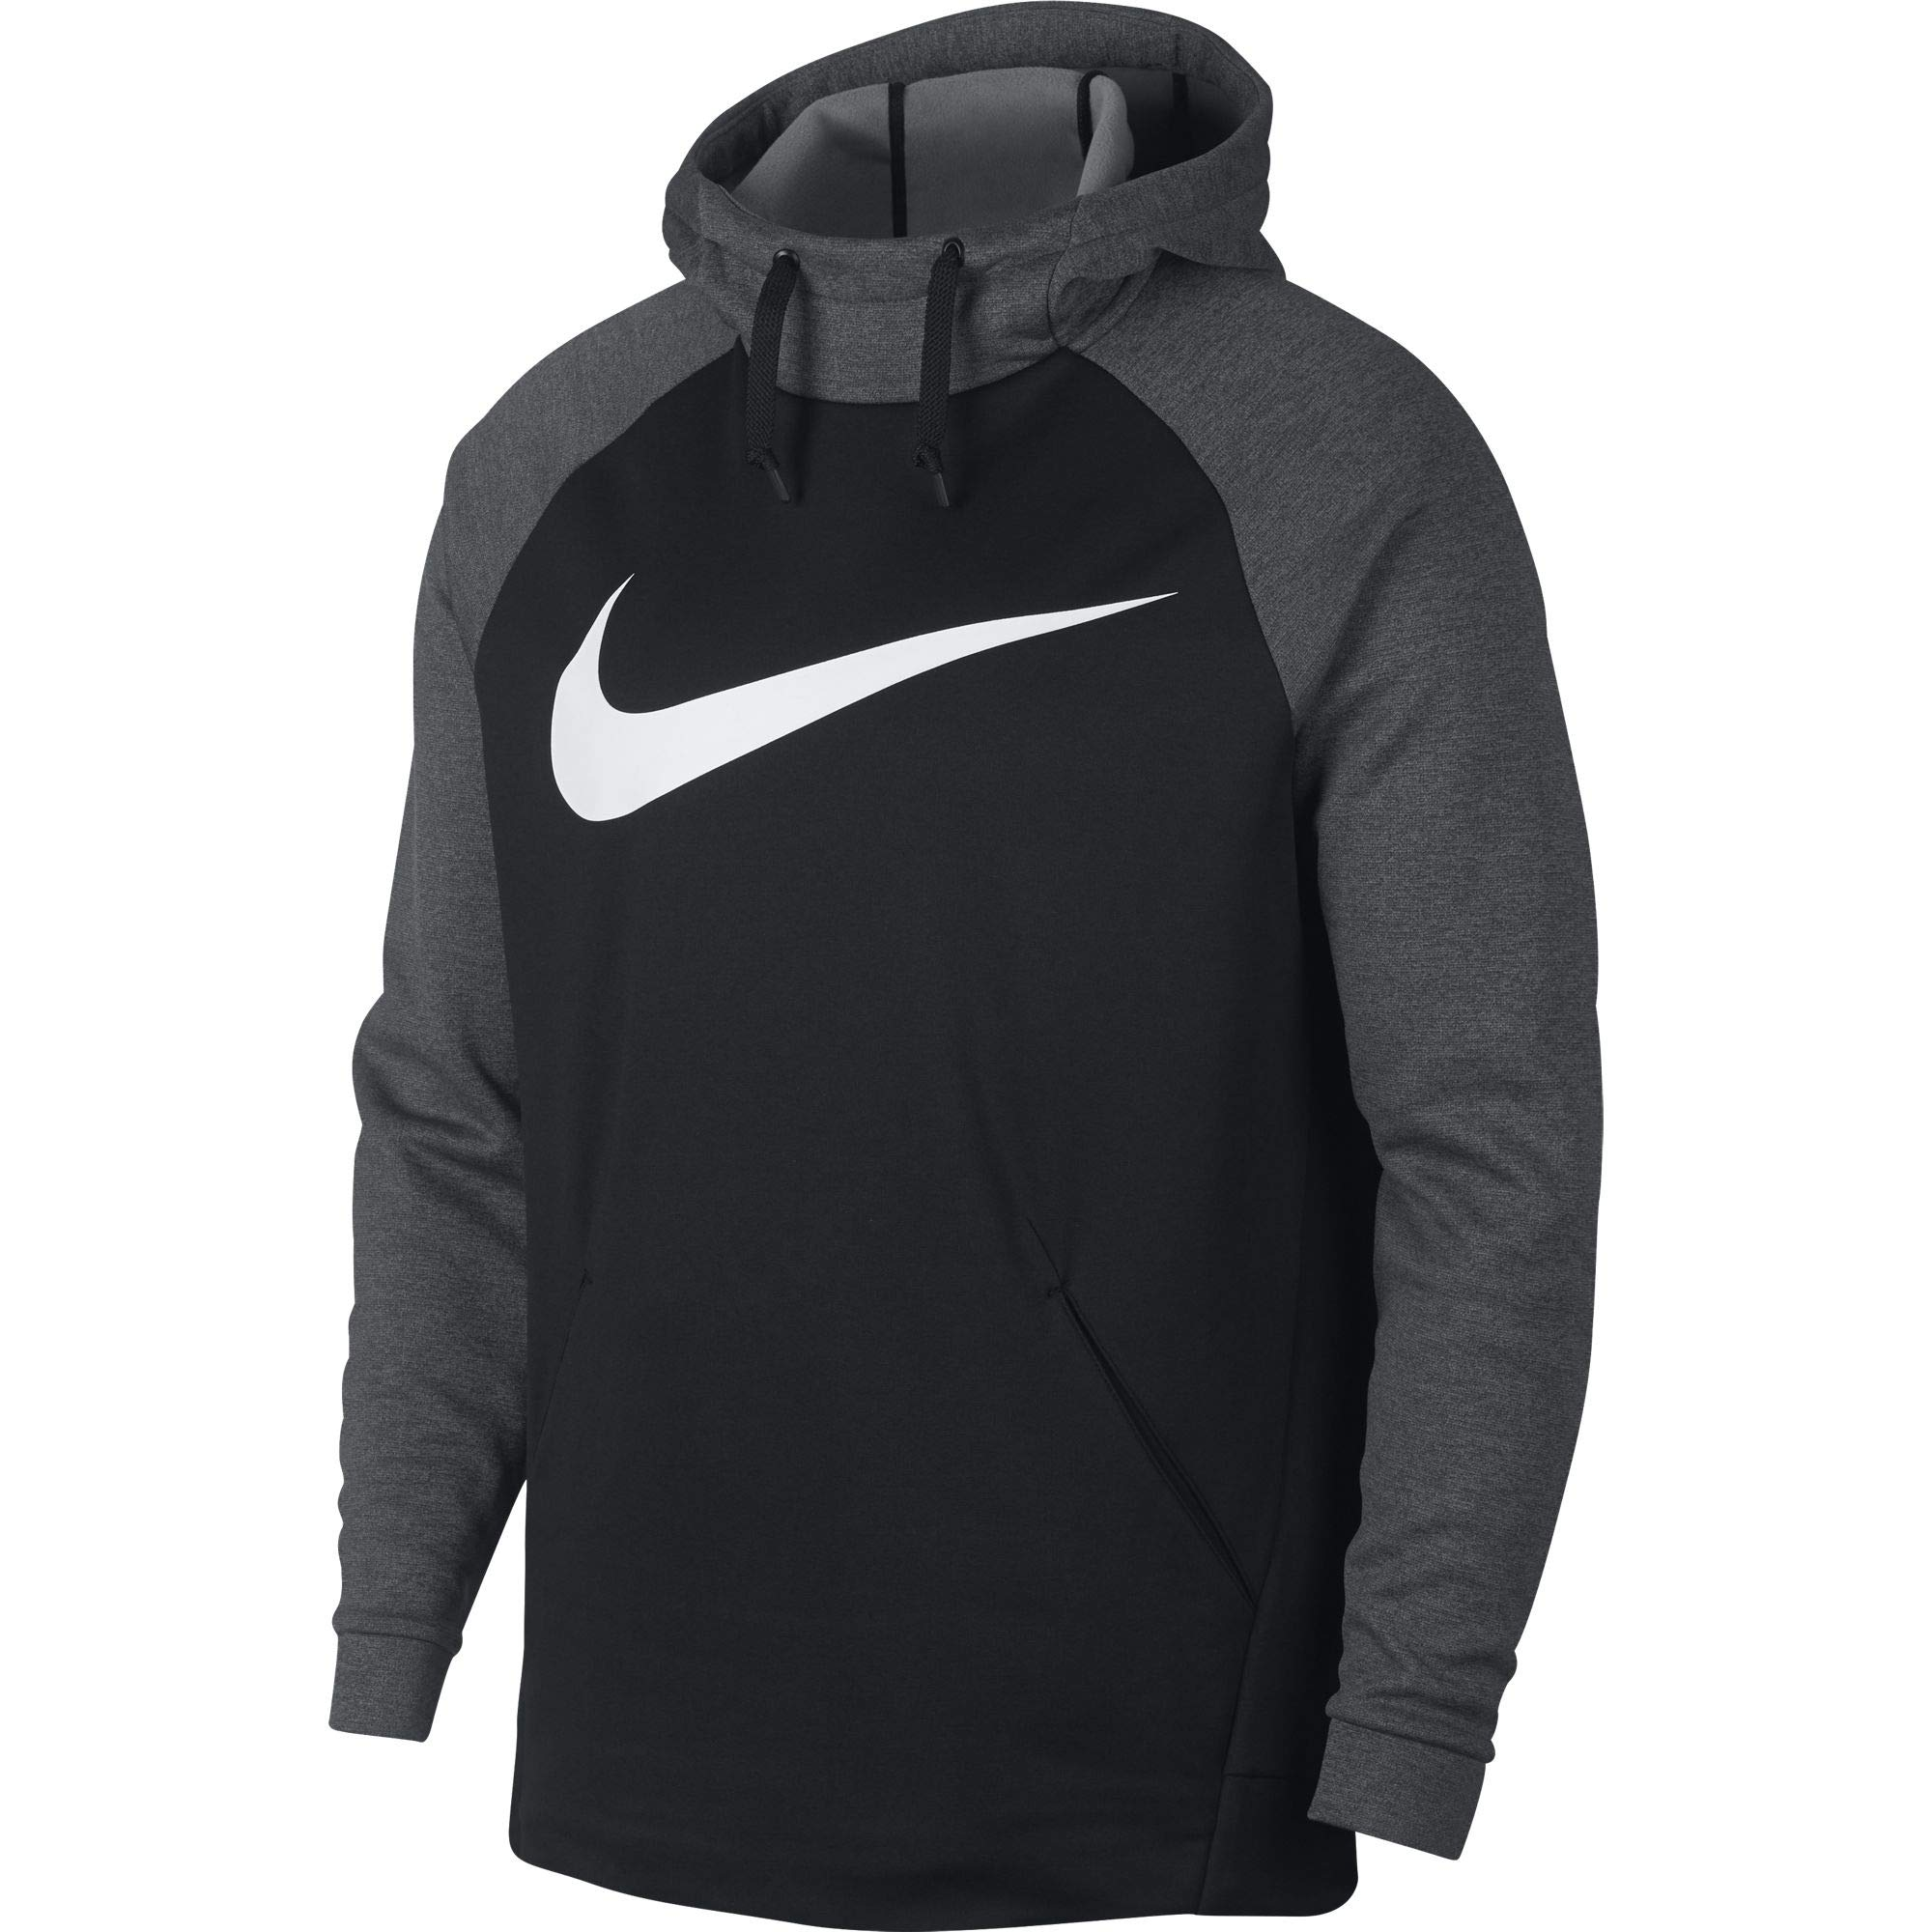 Nike Men's Therma Swoosh Training Hoodie Black/Charcoal Heather/White Size Small